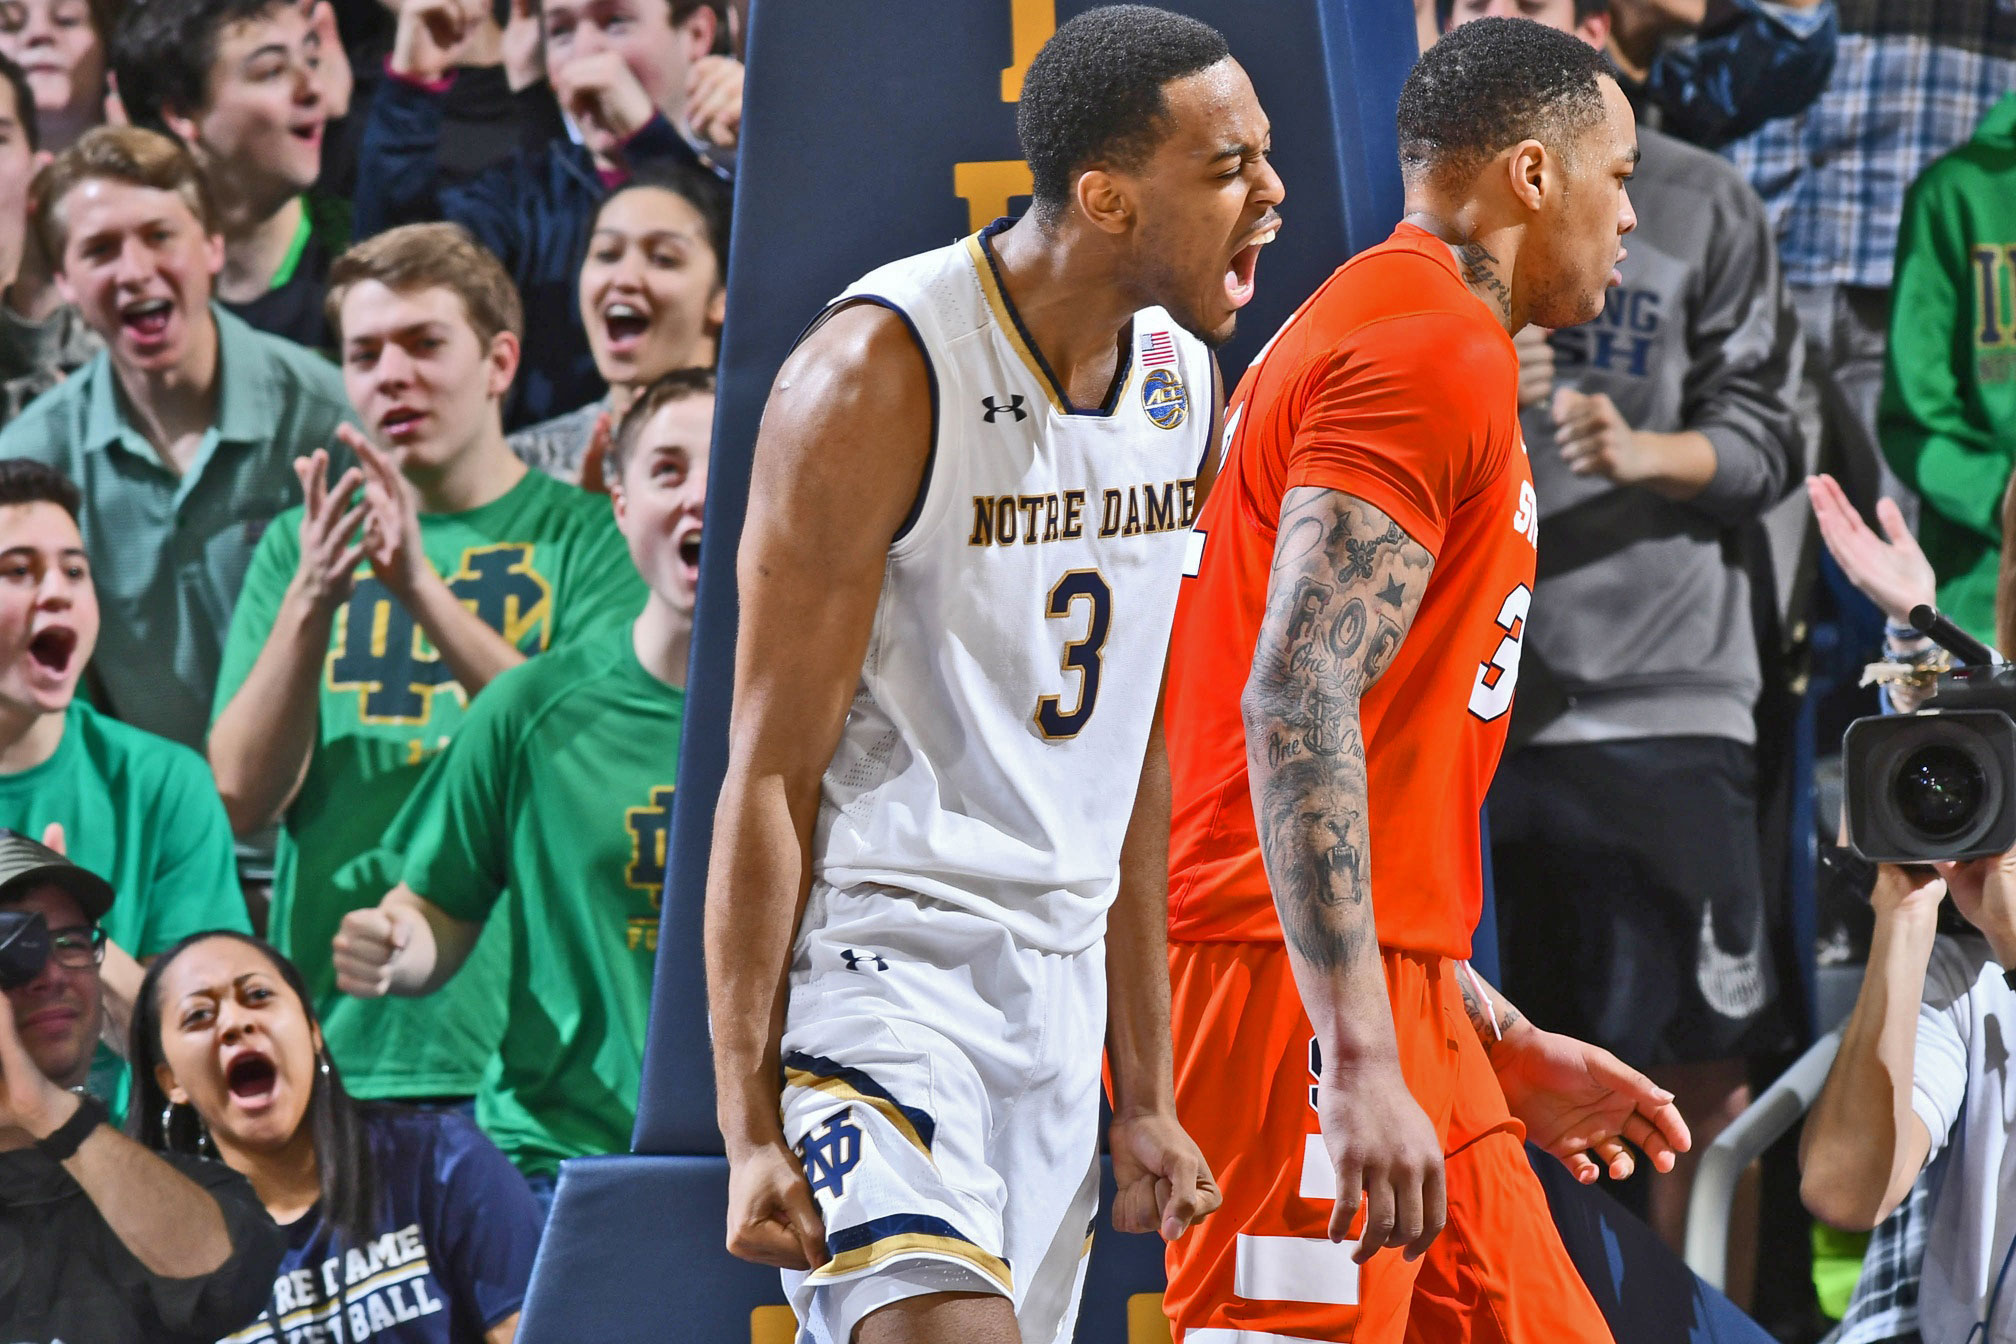 Notre-dame-syracuse-bball-highlights